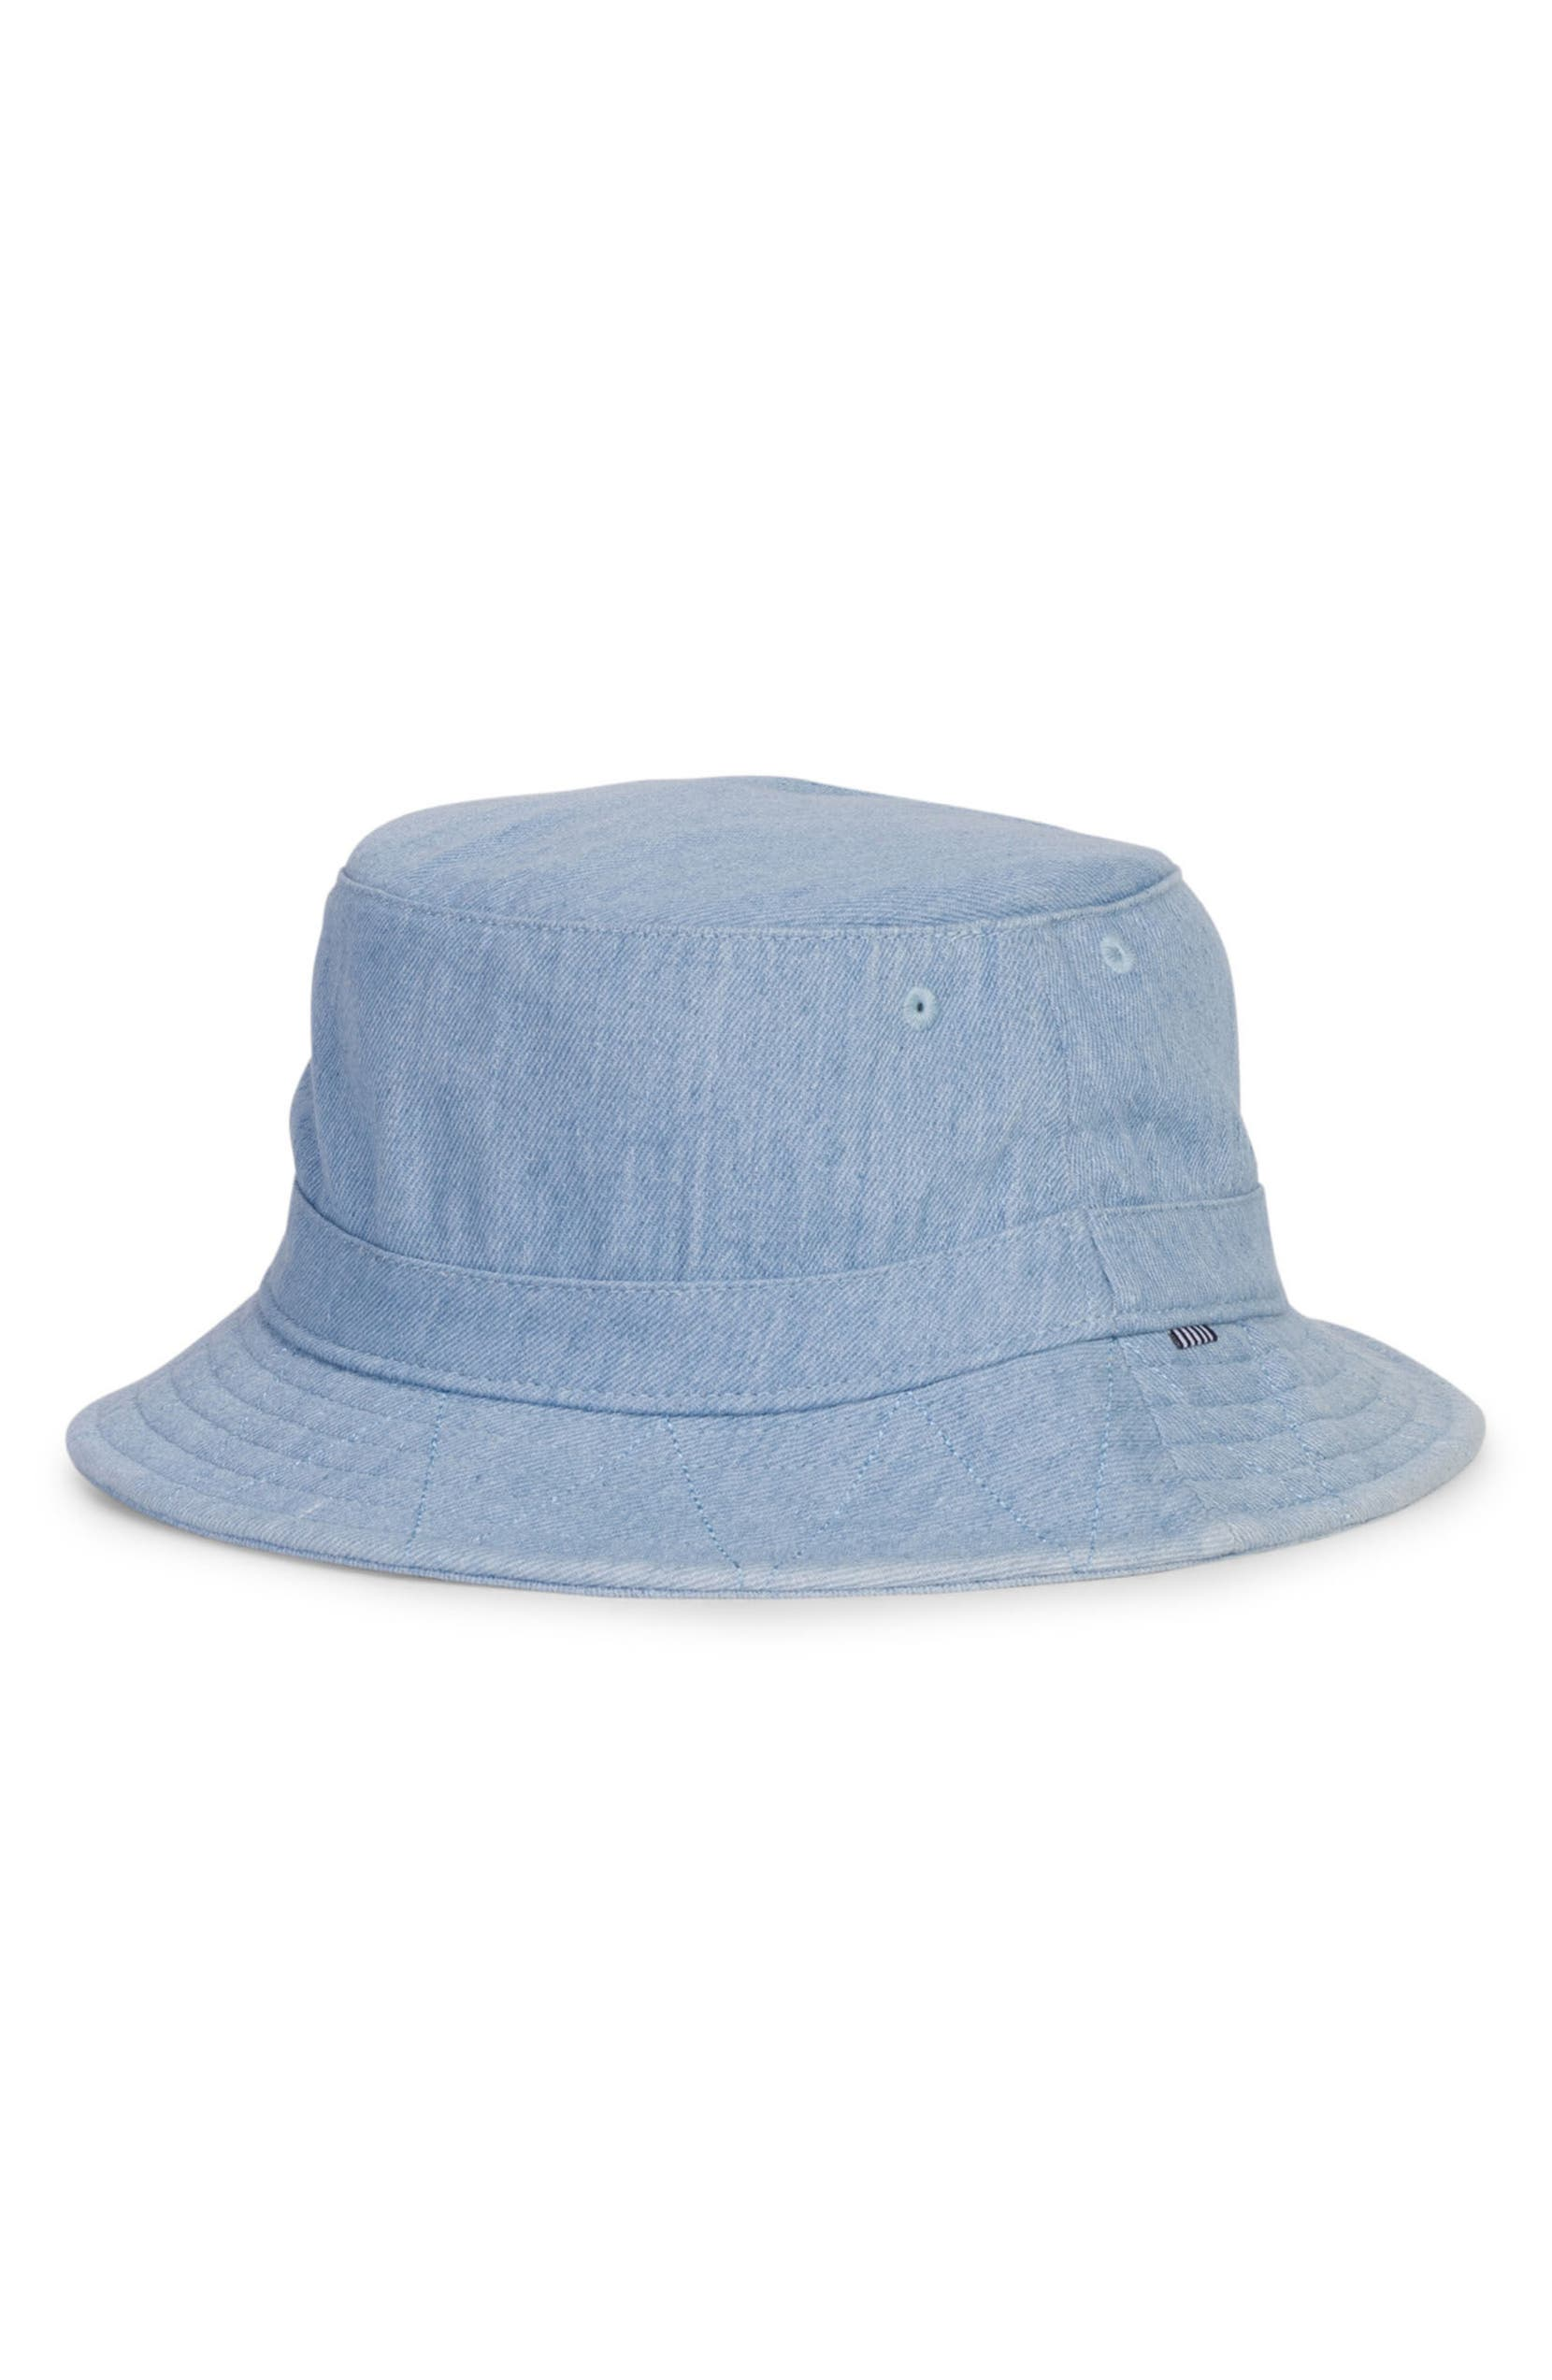 Herschel Supply Co. Lake Denim Bucket Hat  c8d8ce26bbc